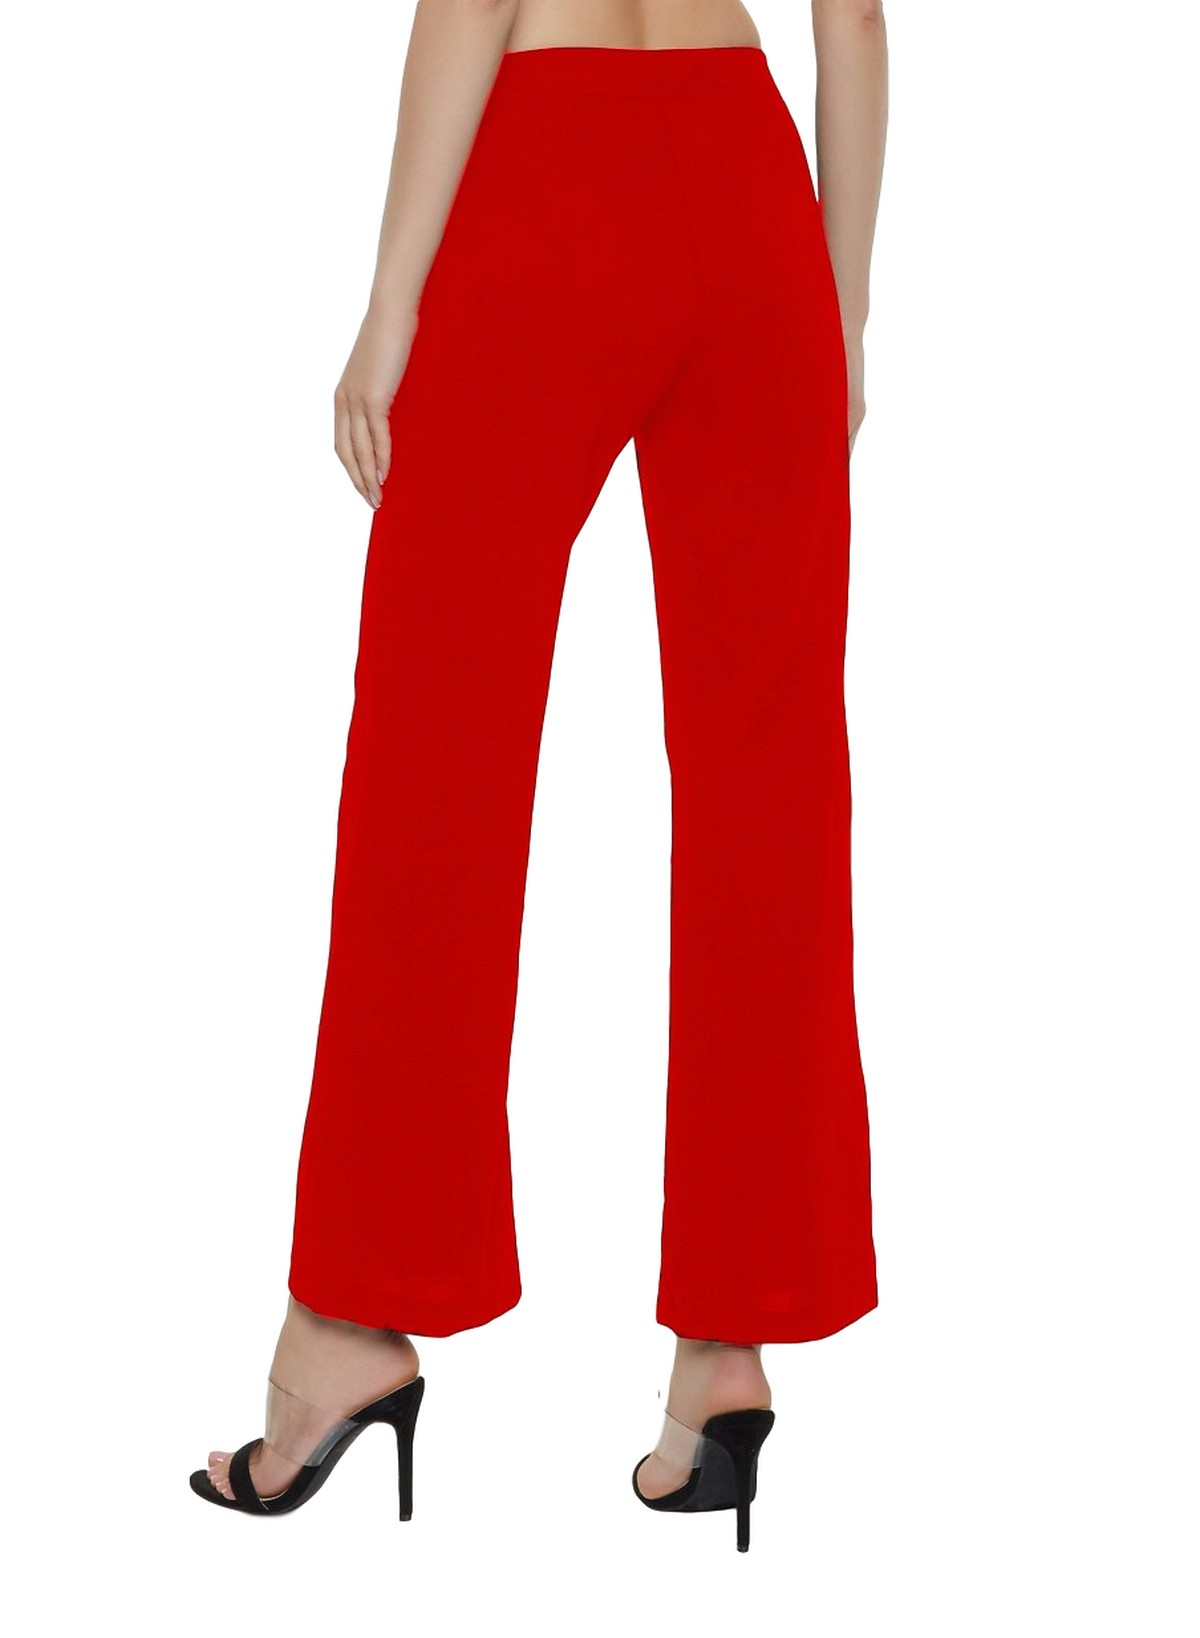 Slim Fit Culottes Trousers in Red